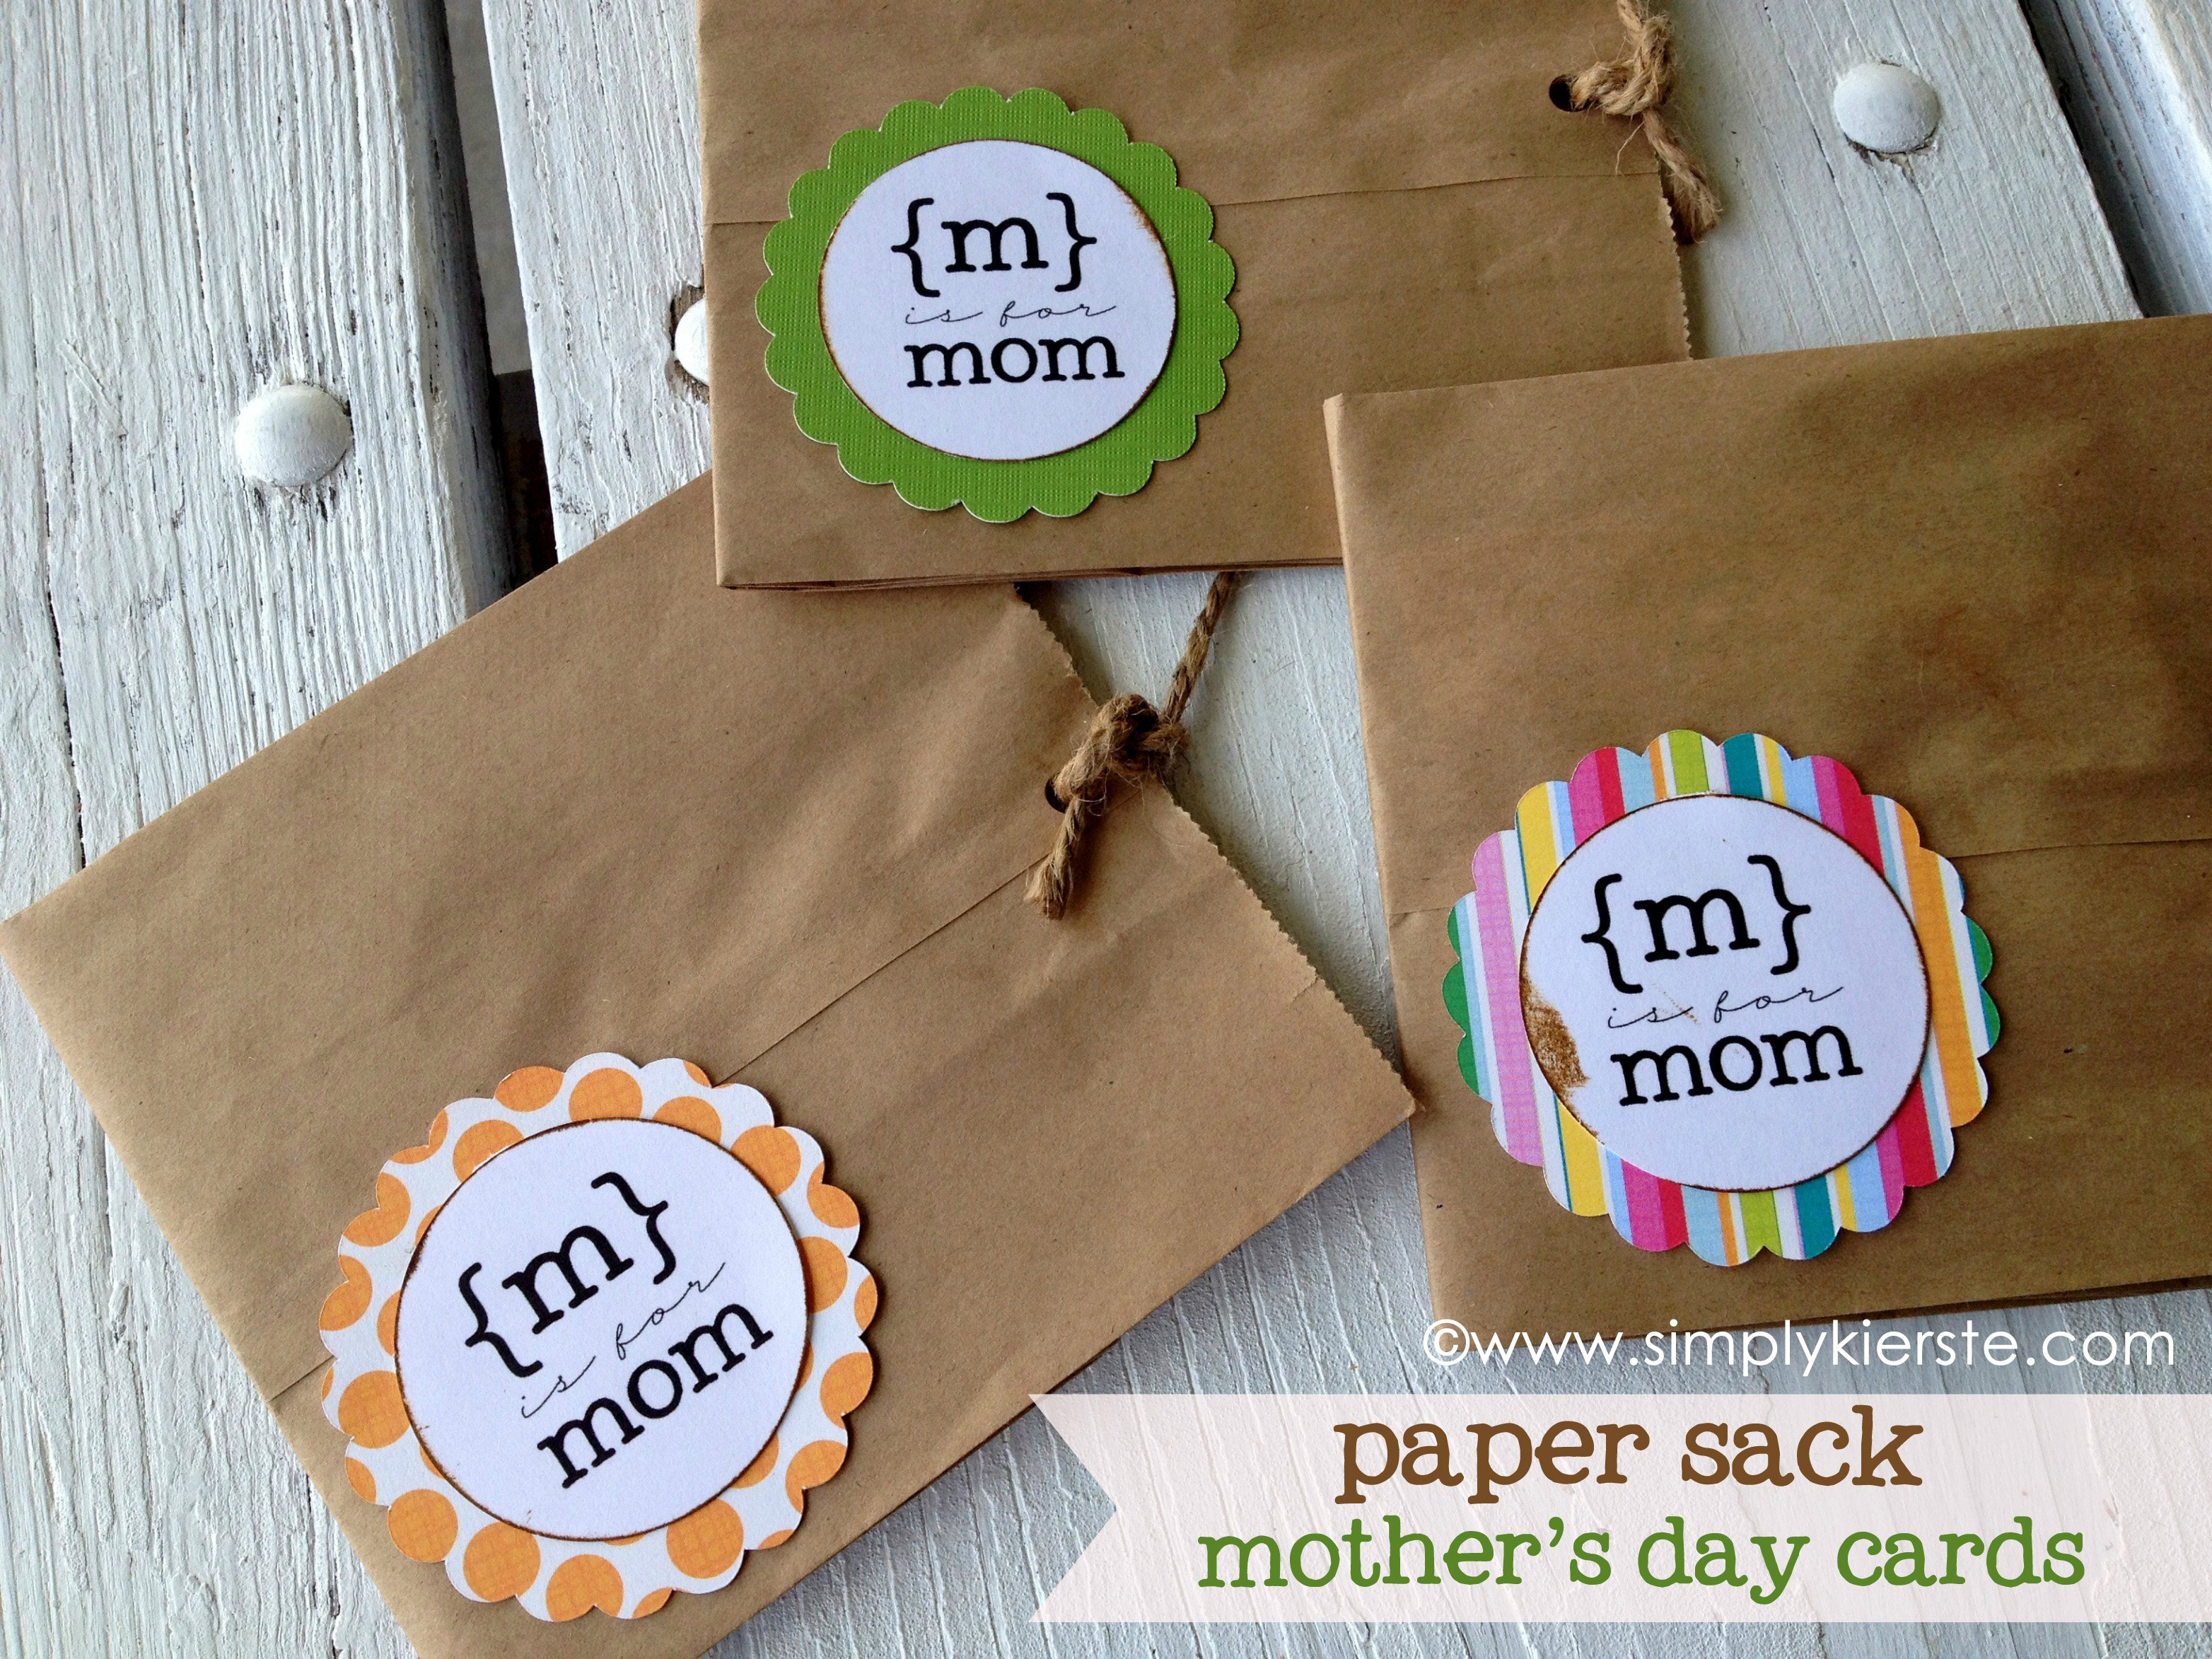 Paper Sack Mother's Day Card: a Child's Q&A